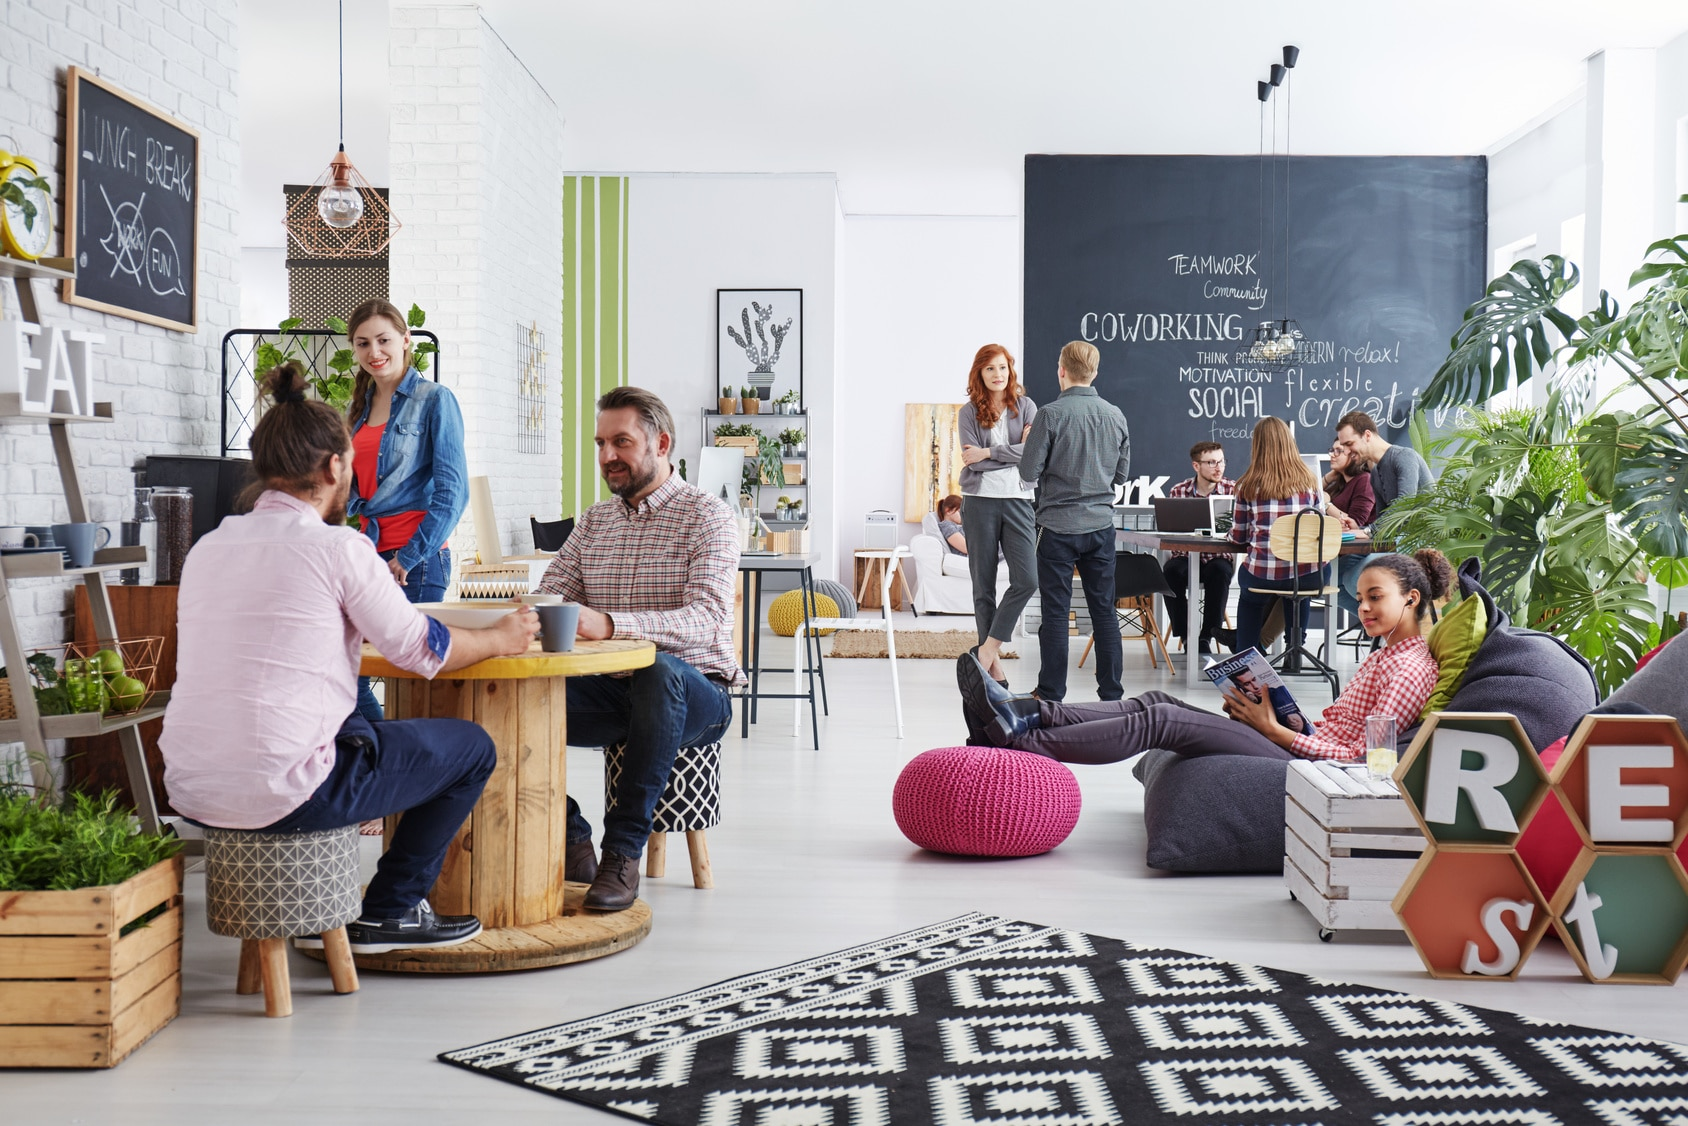 Shared Workspace Revolution: The Rise of Coworking Explained